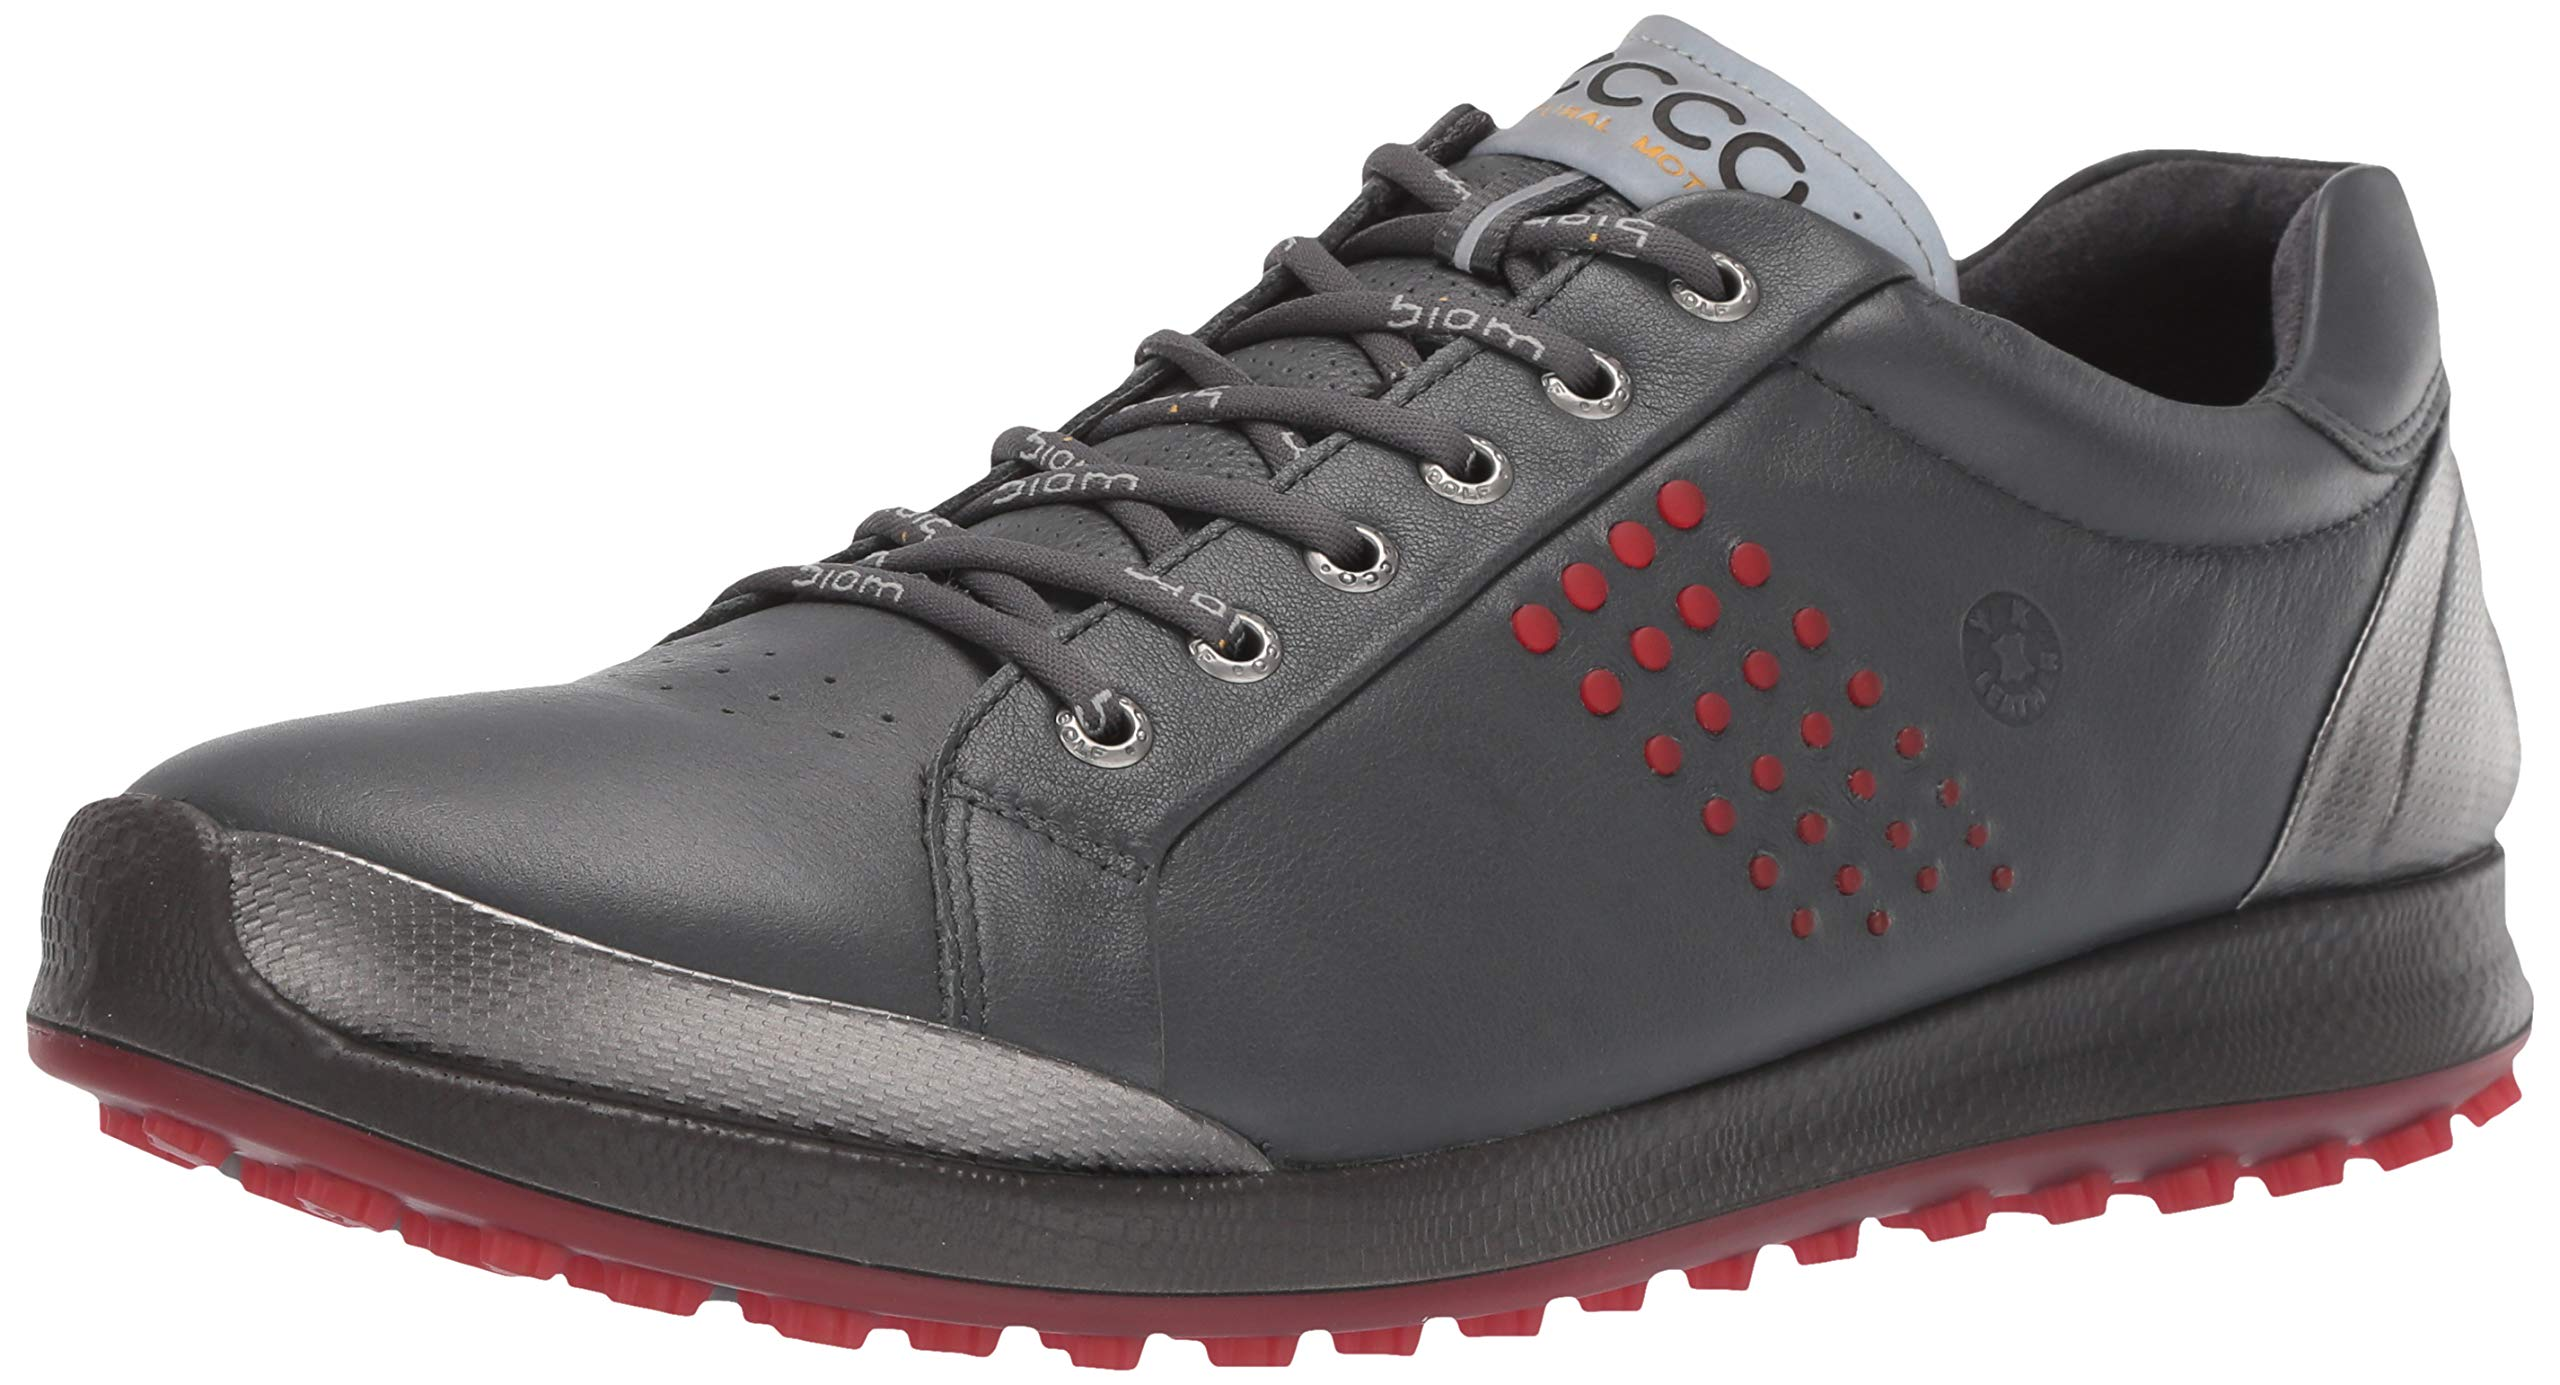 ECCO Men's Biom Hybrid 2 Hydromax Golf Shoe, Dark Shadow Yak Leather, 13 M US by ECCO